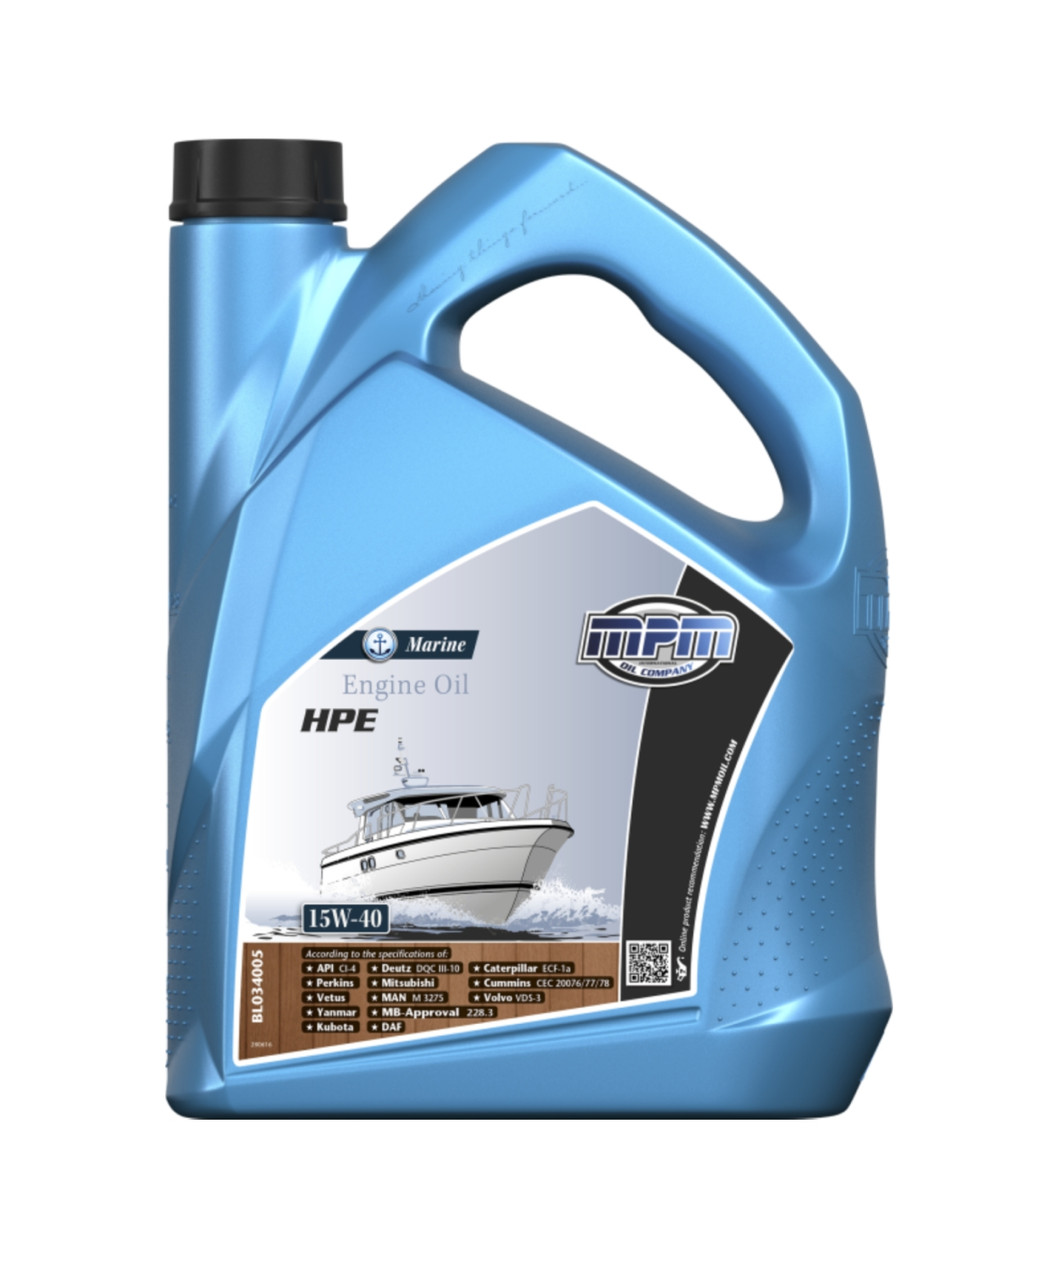 15W-40 Marine engine oil 5 litre, from parts4engines